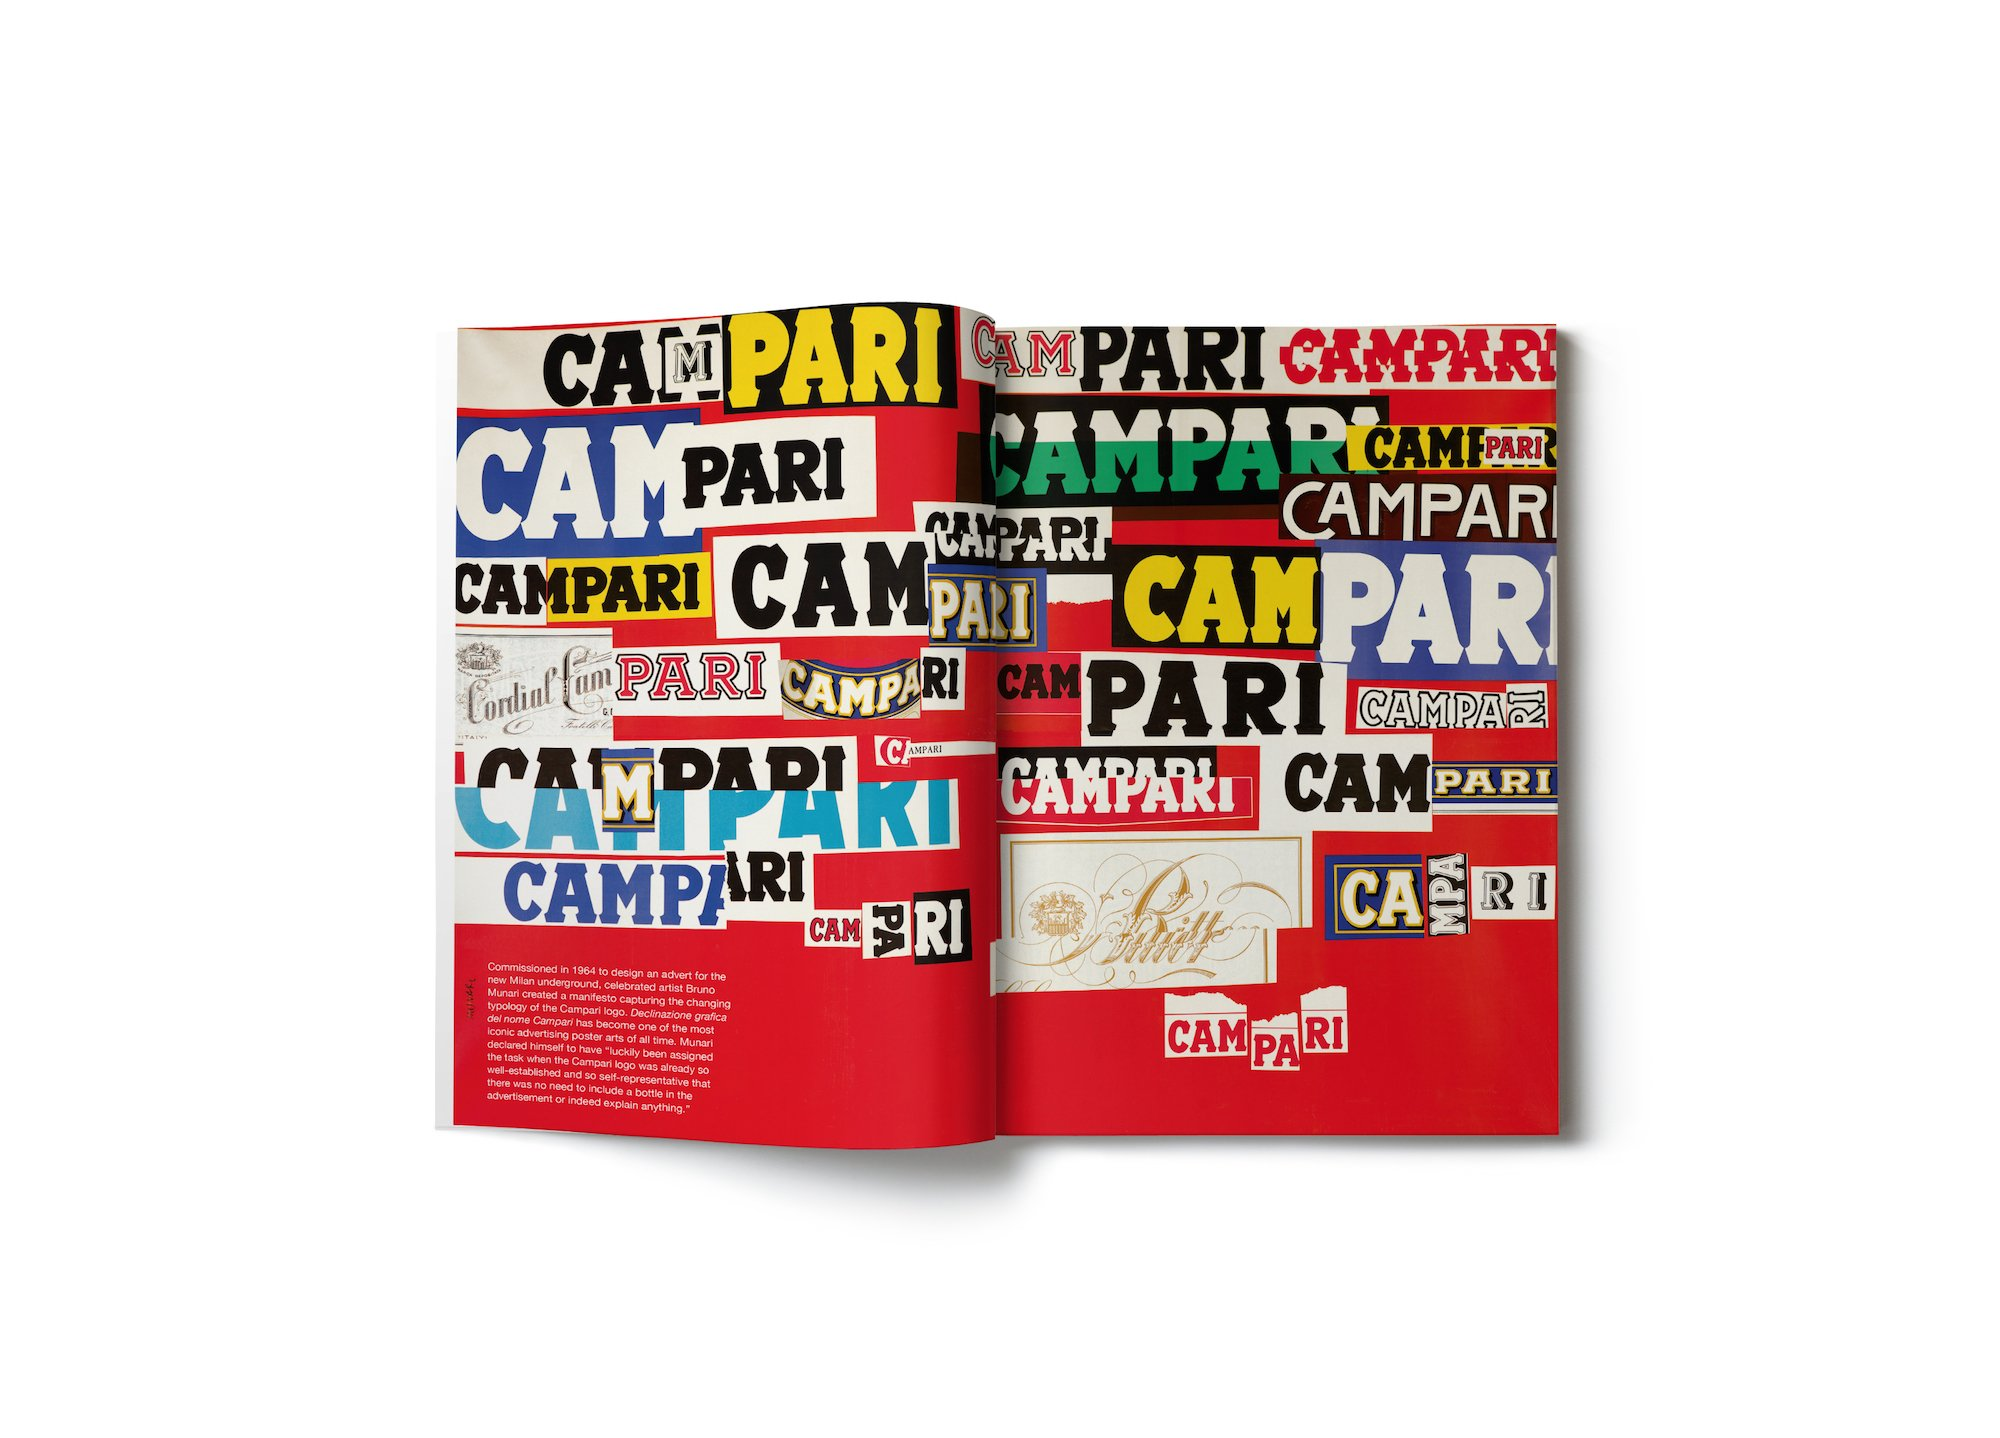 'Declinazione Grafica del Nome Campari' by Bruno Munari for the new Milan underground, 1964 © Campari and MoMA